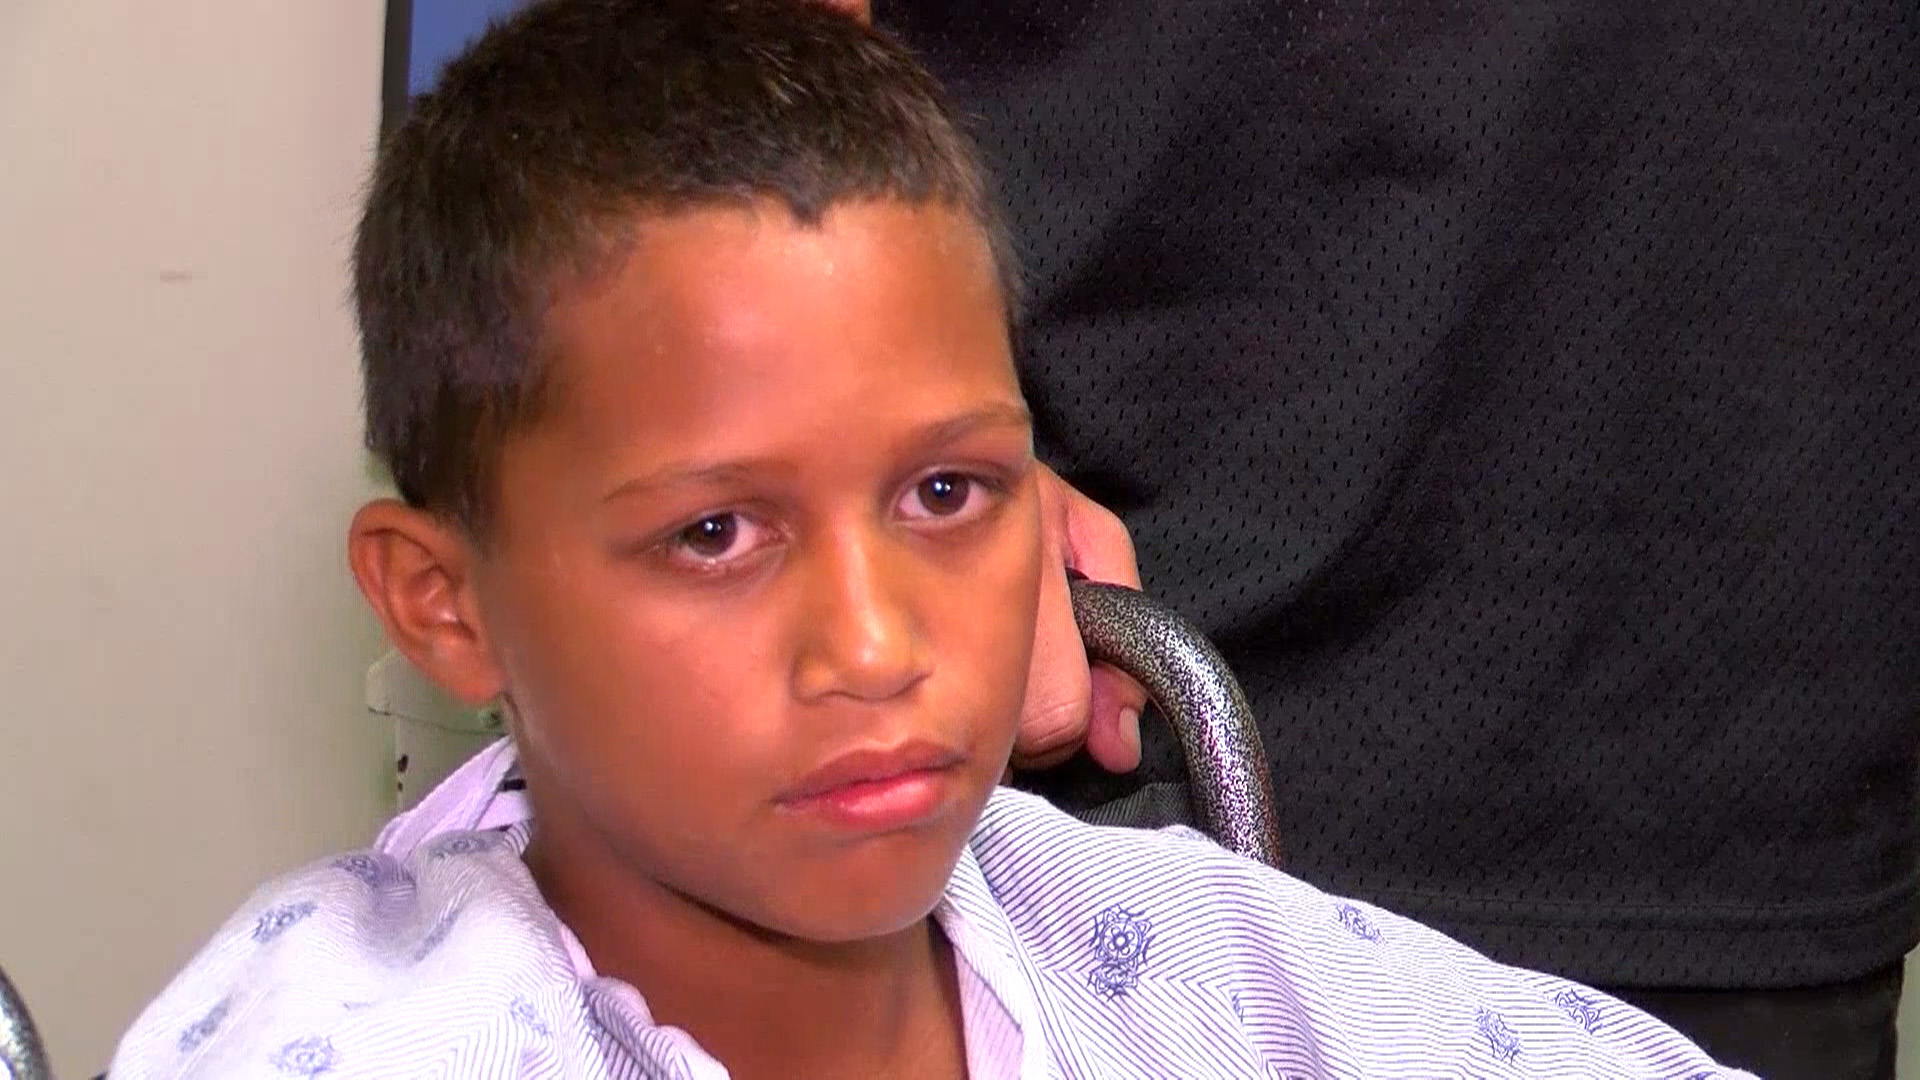 Raymond Senensi, Boy Attacked by Shark: 'I Just Started Kicking'